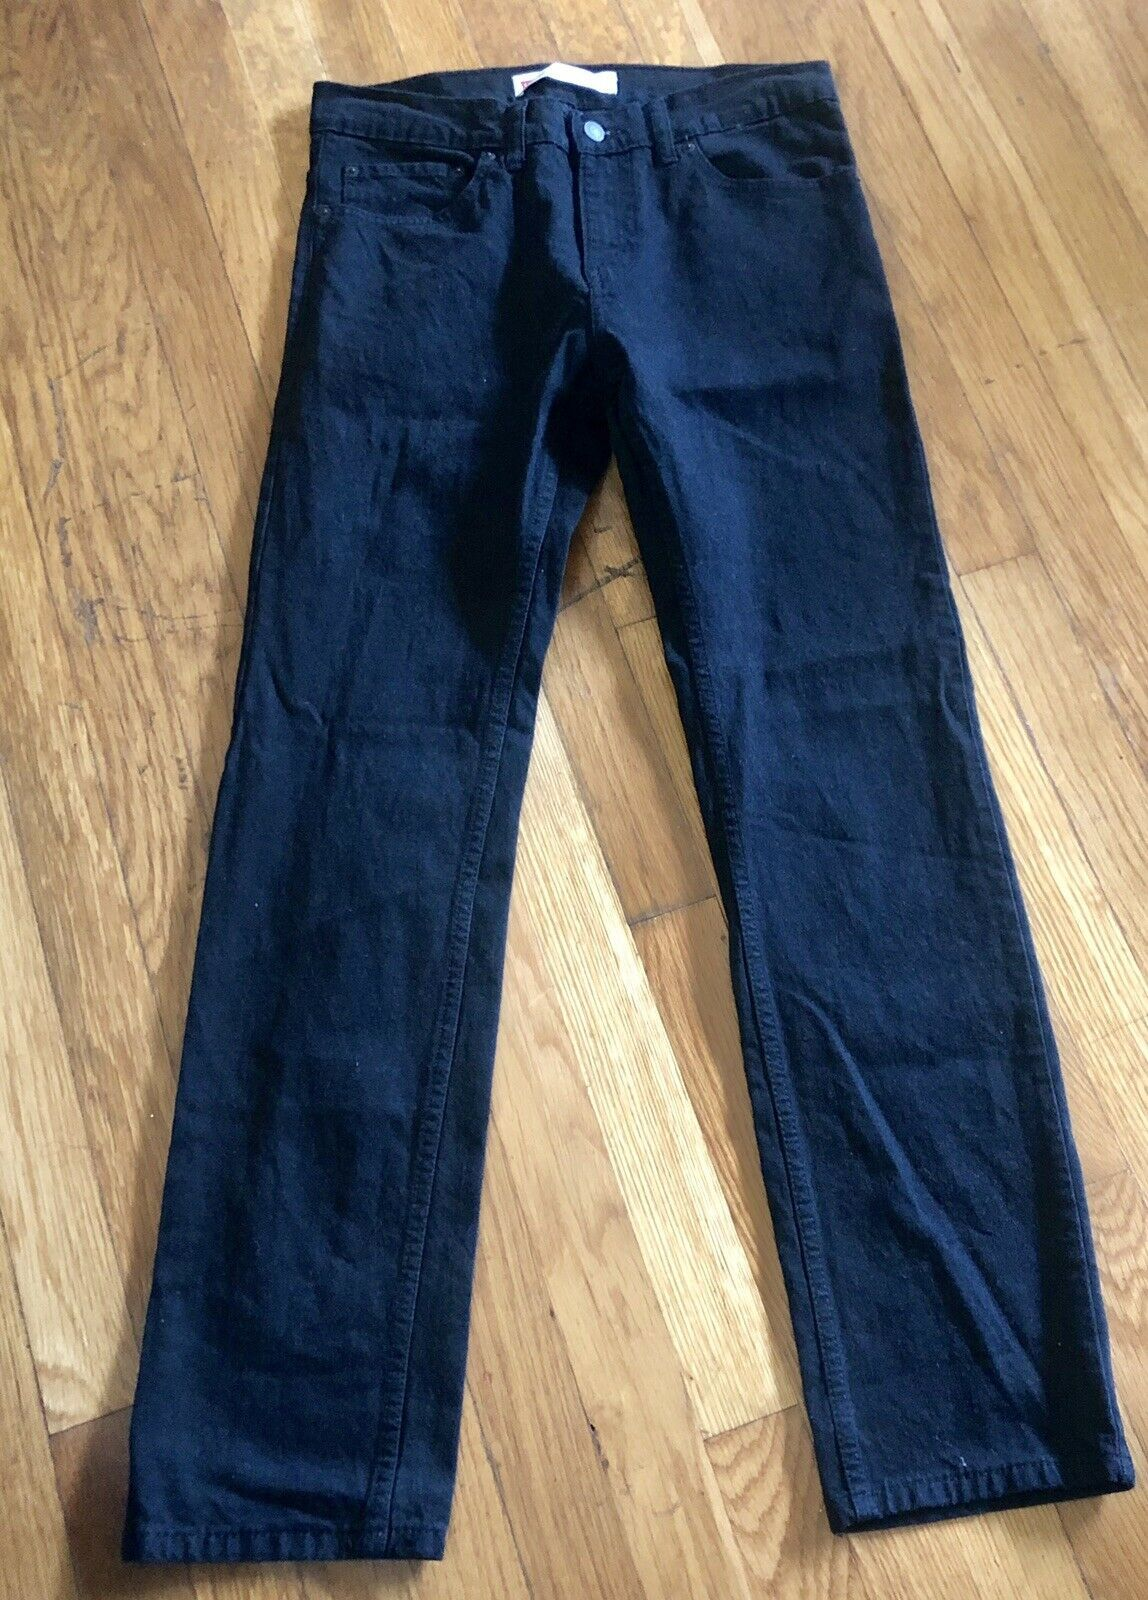 Primary image for Levi's 511 Slim Fit 18 Reg Youth Denim Black Jeans 29 X 29